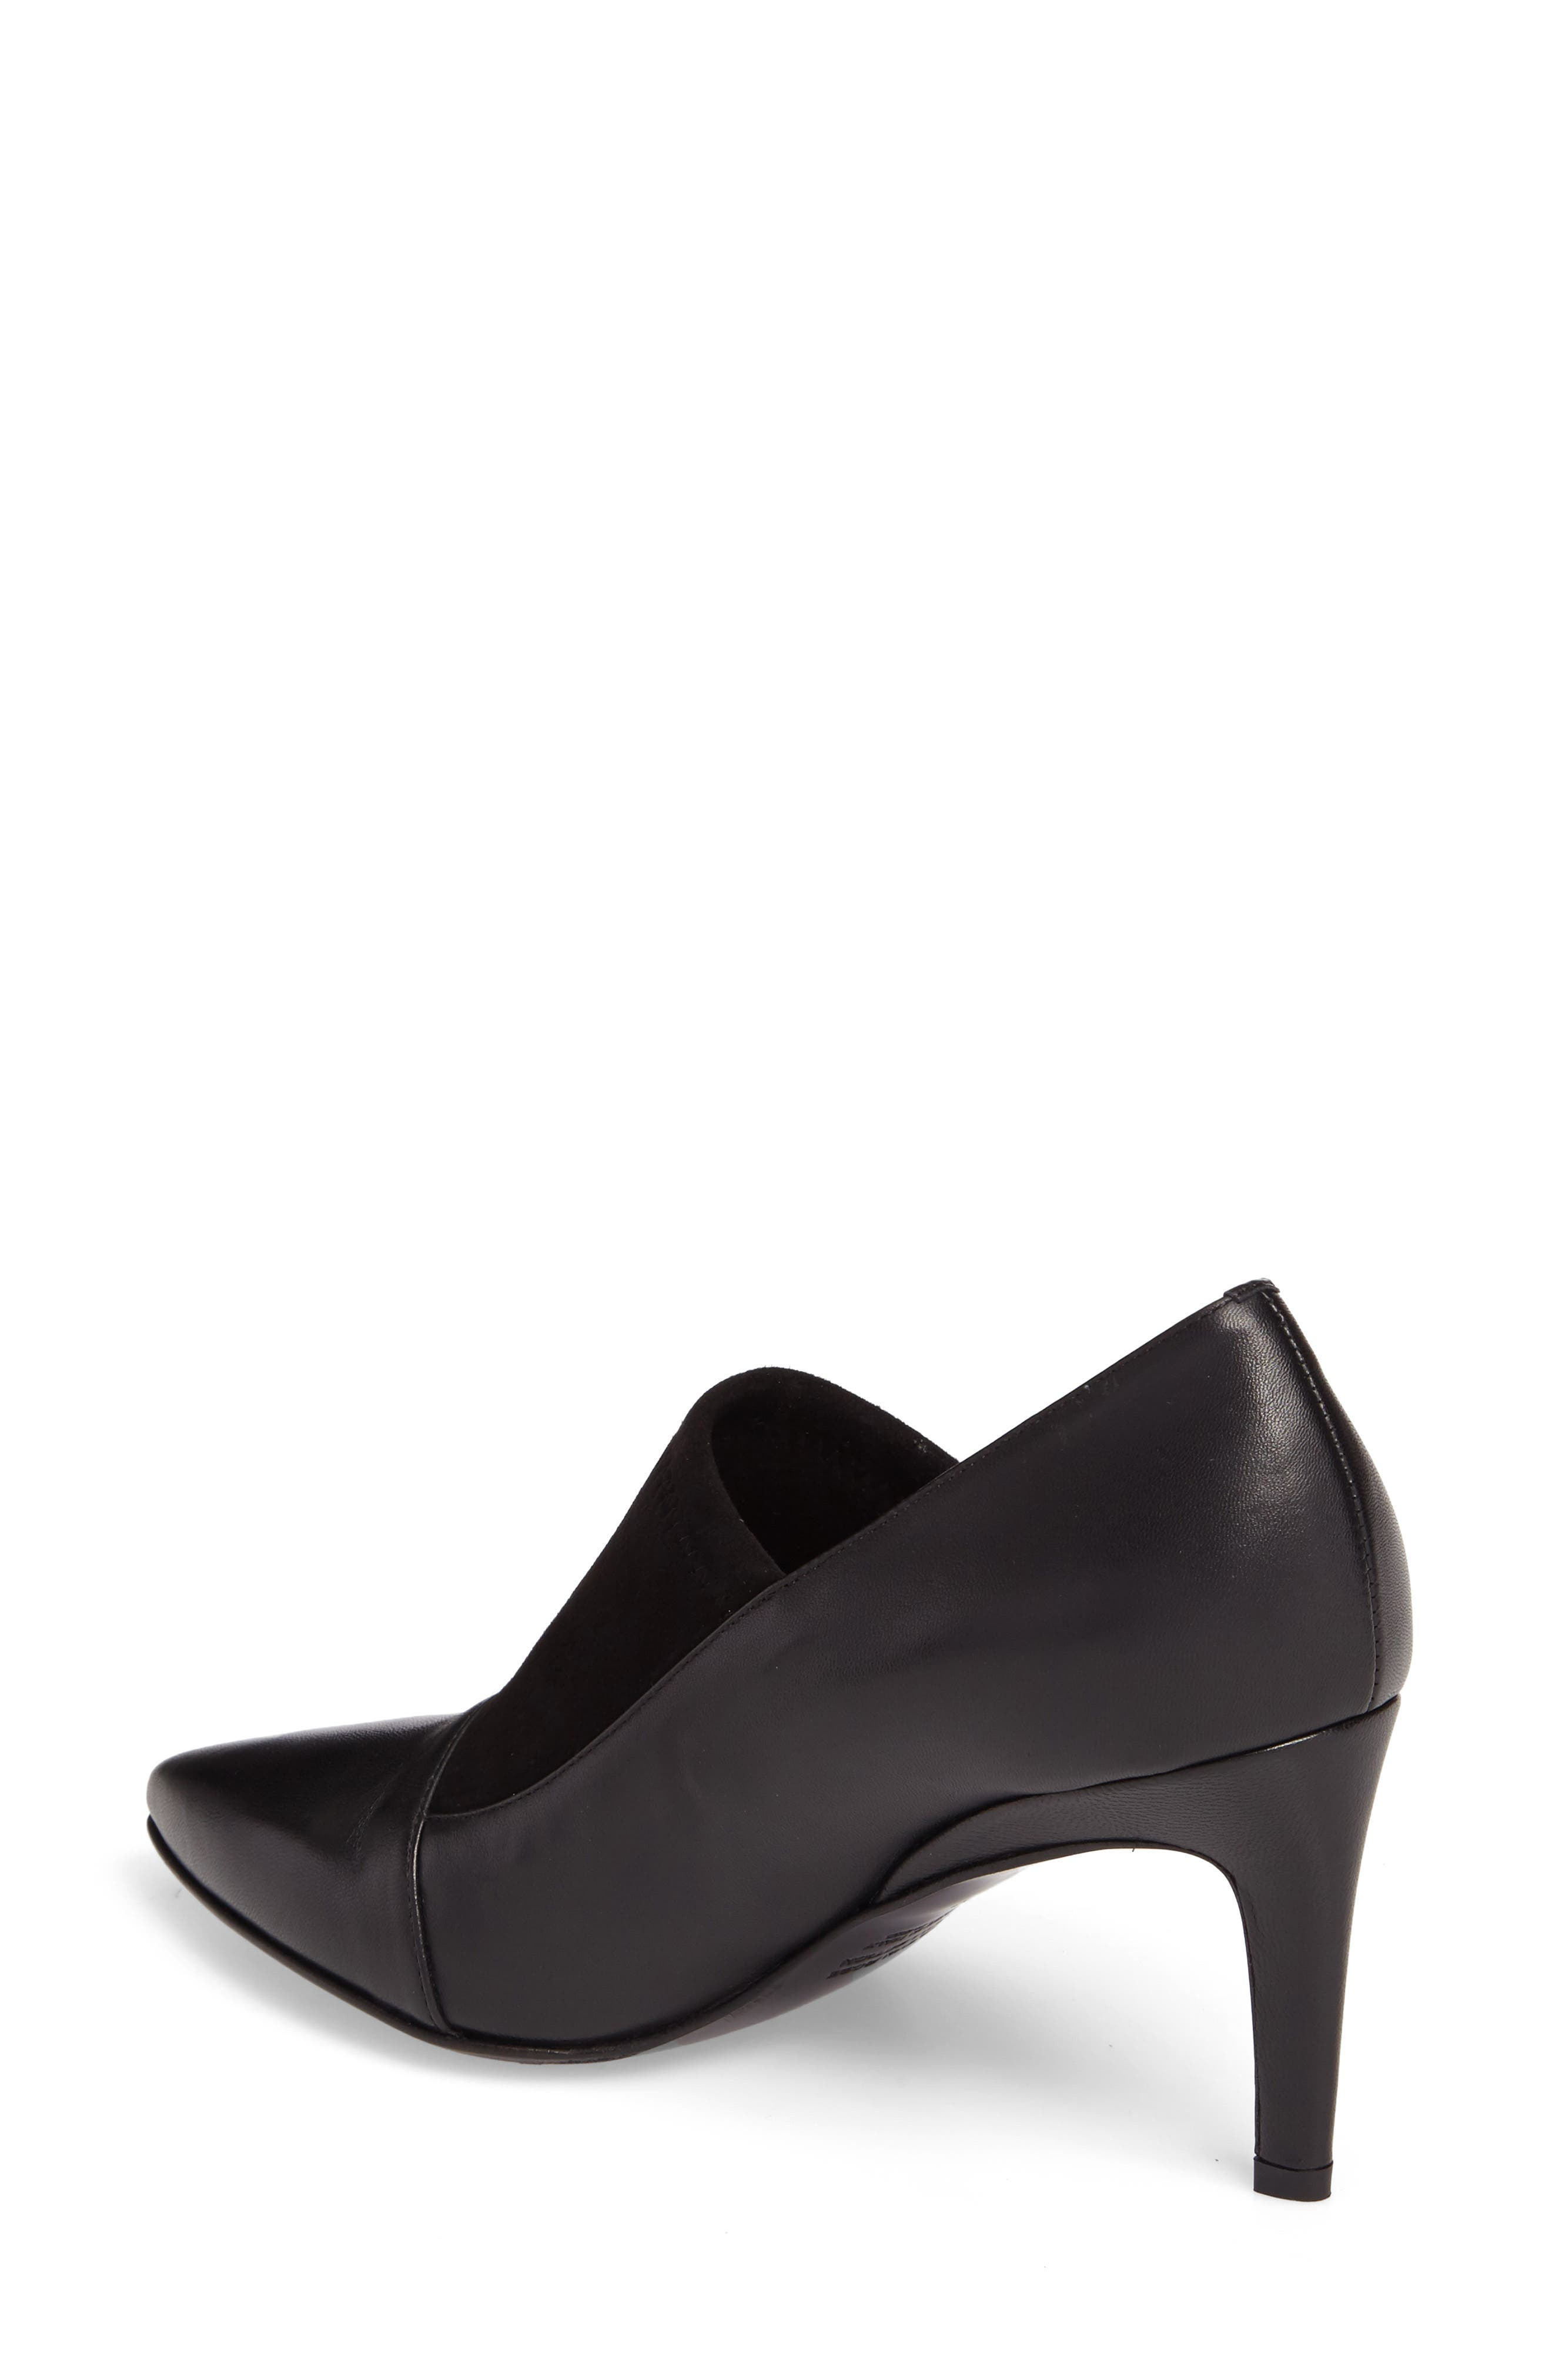 Ghita Pointy Toe Pump,                             Alternate thumbnail 2, color,                             004